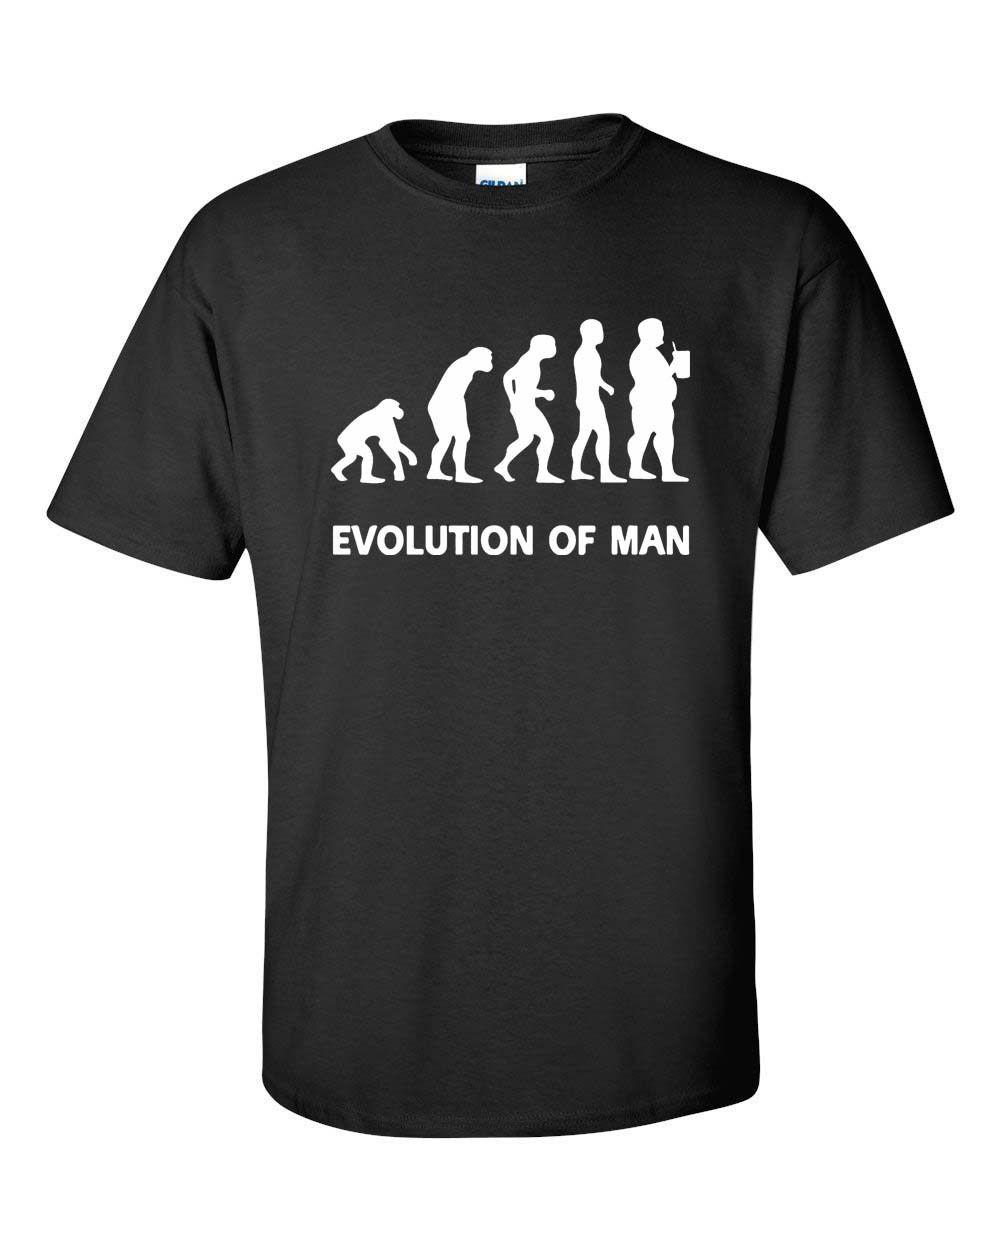 Evolution Of Man Fat Guy Beer Drinking Funny College Men's Tee Shirt Men Women Unisex Fashion tshirt Free Shipping Funny Cool